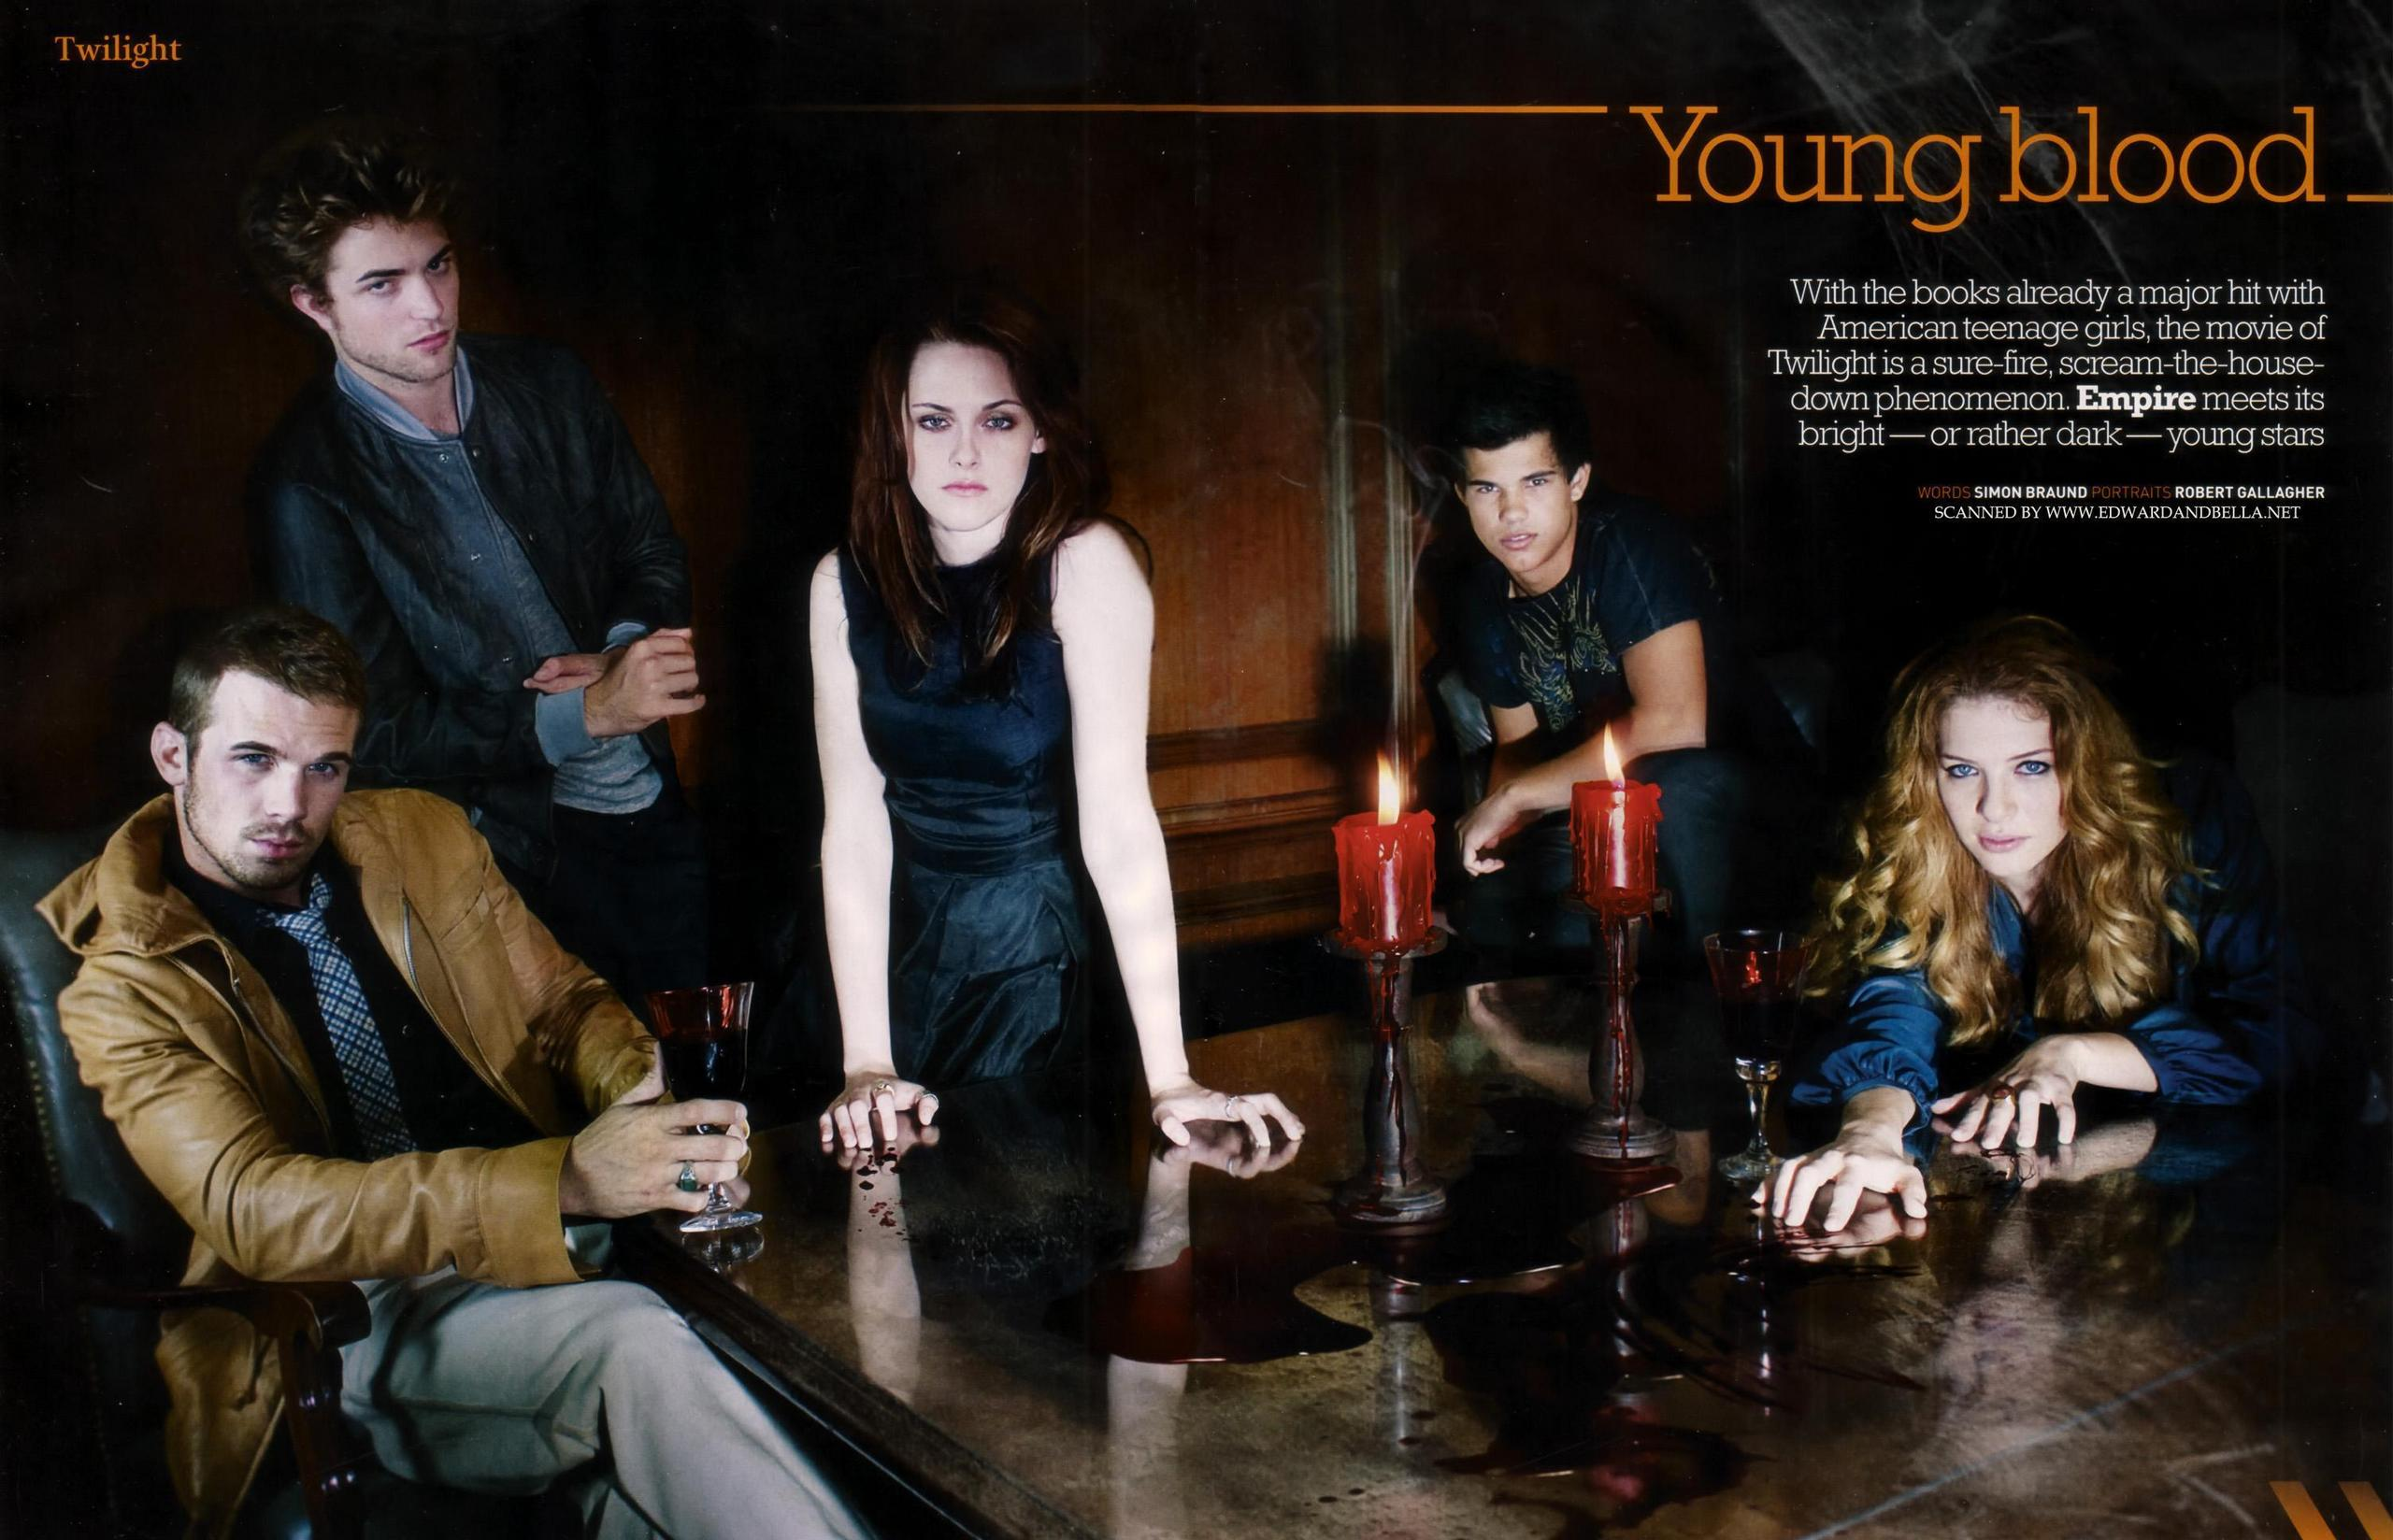 New and Old Empire Magazine Outtakes with Robert Pattinson and Kristen Stewart